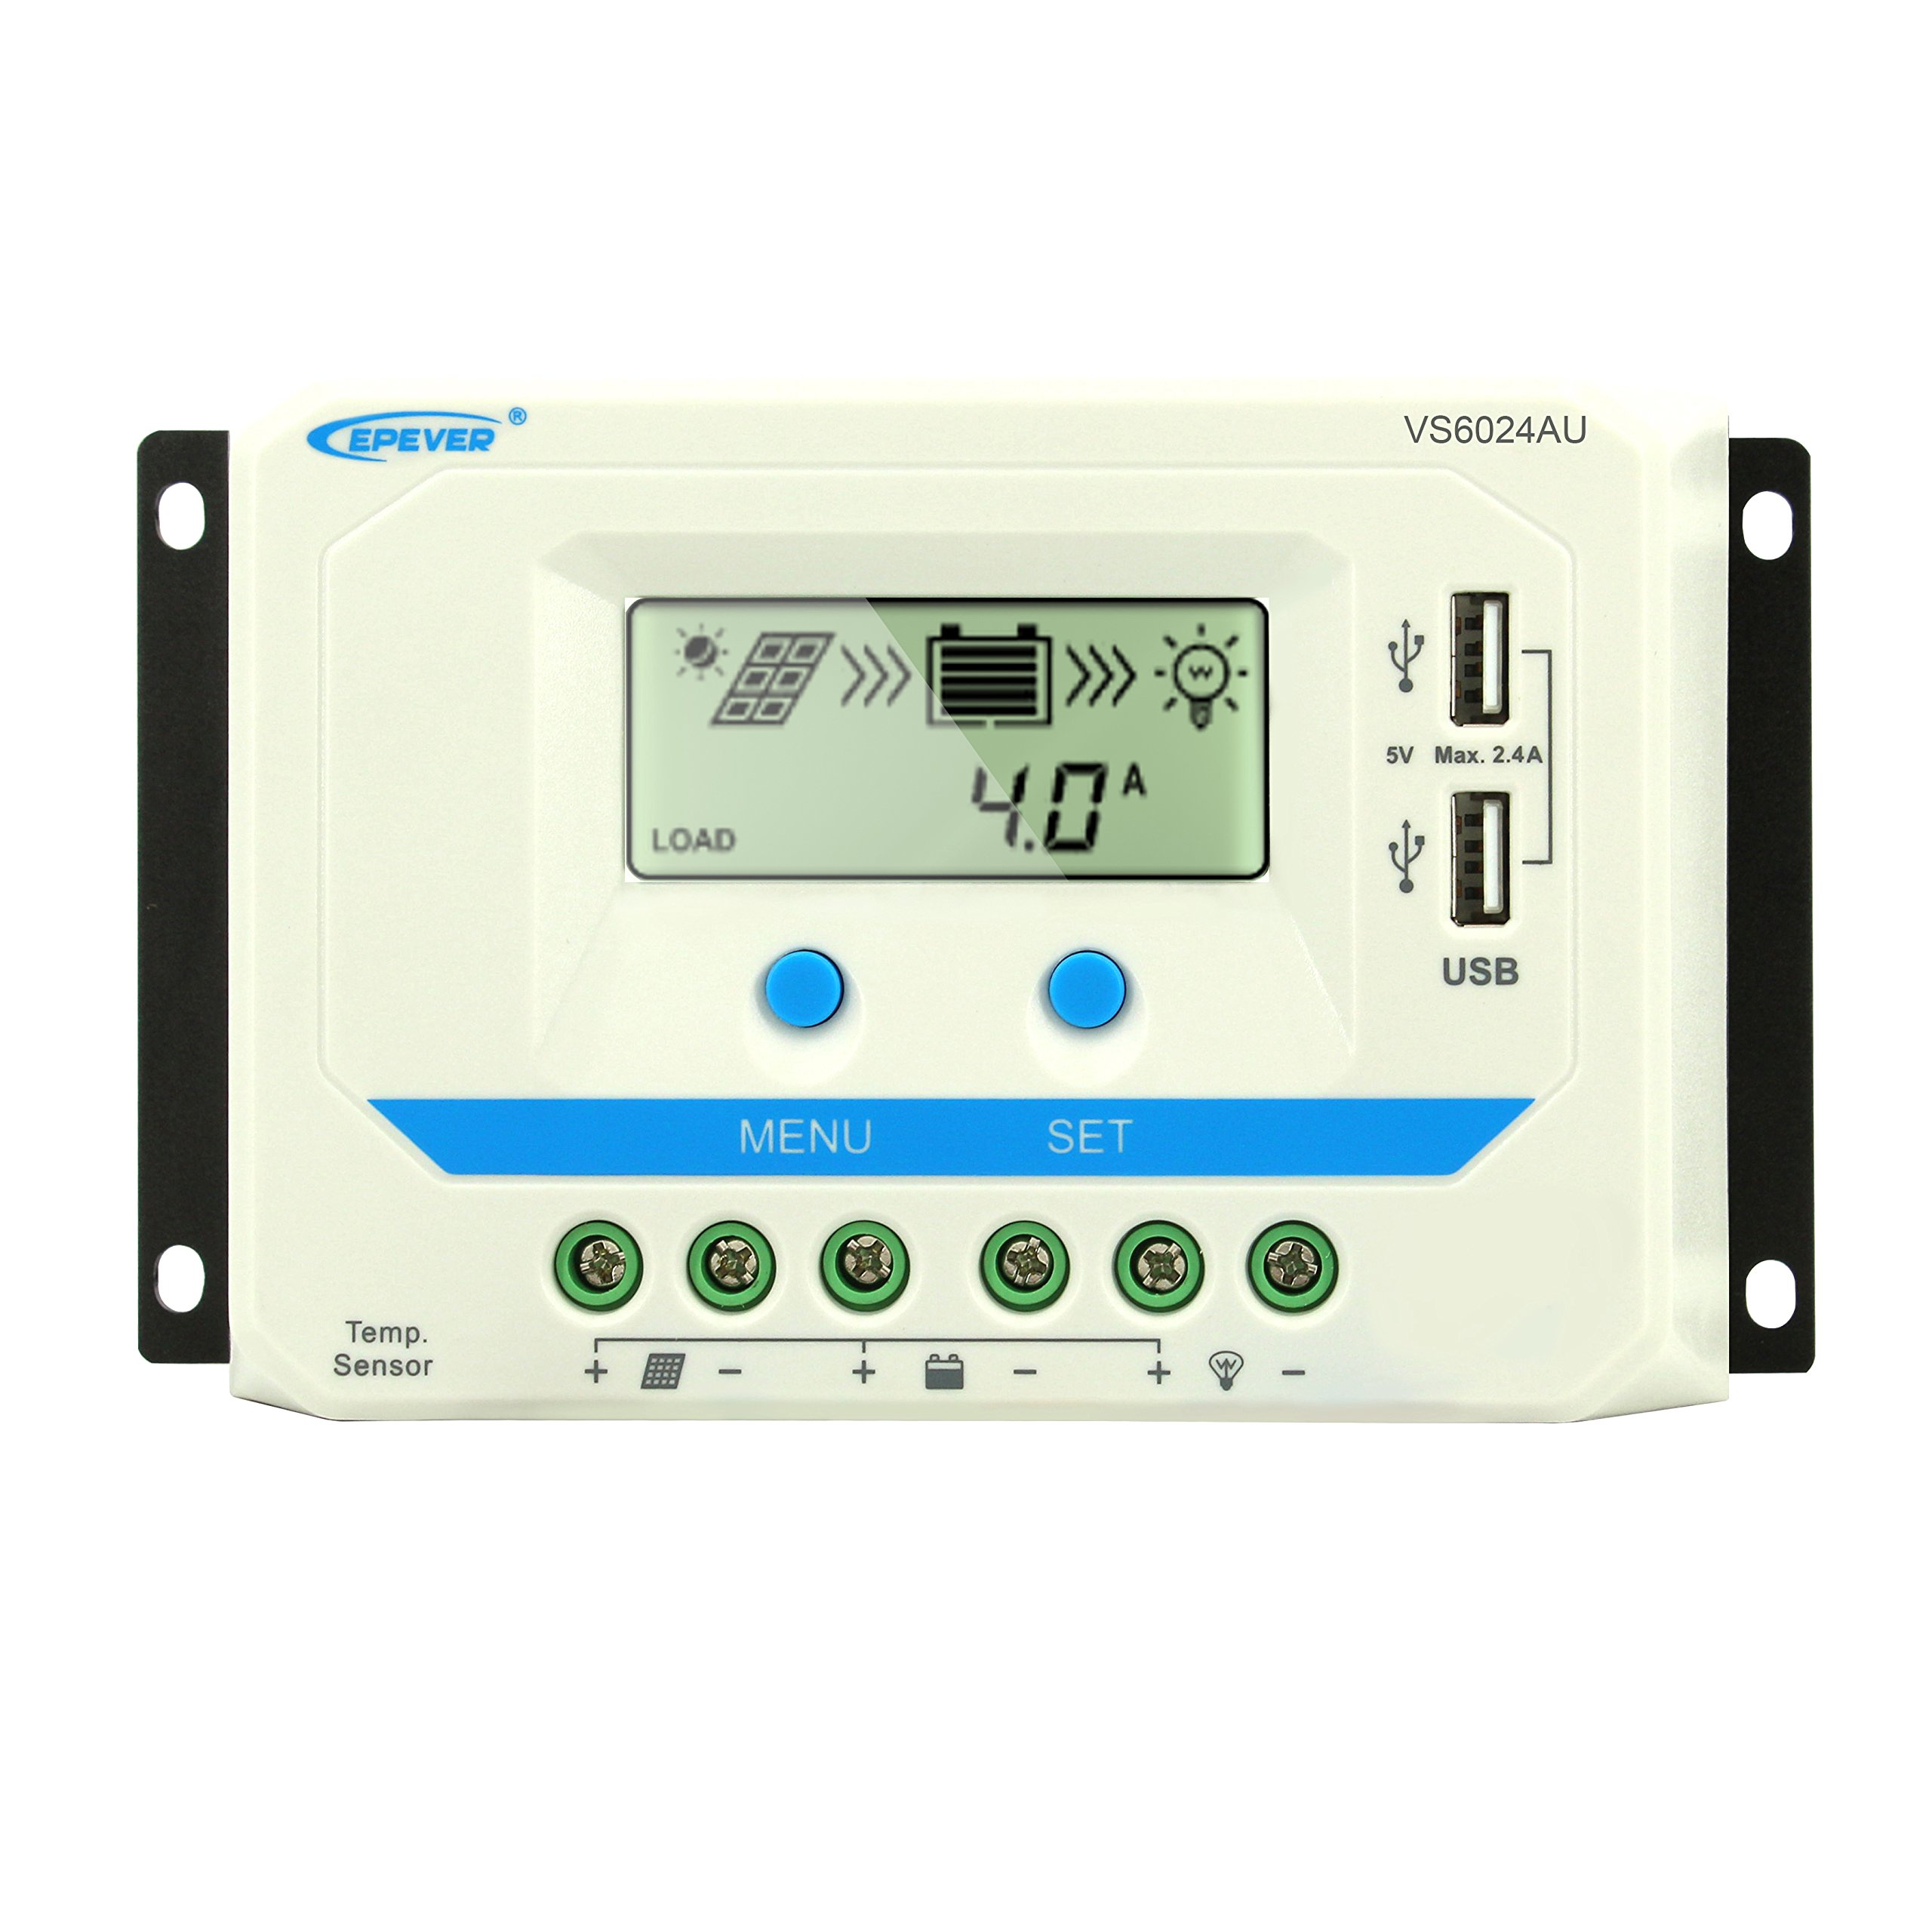 EPEVER PWM 60A Solar Charge Controller 12V/24V Battery Charge Regulator Input with LCD Display Dual USB Output